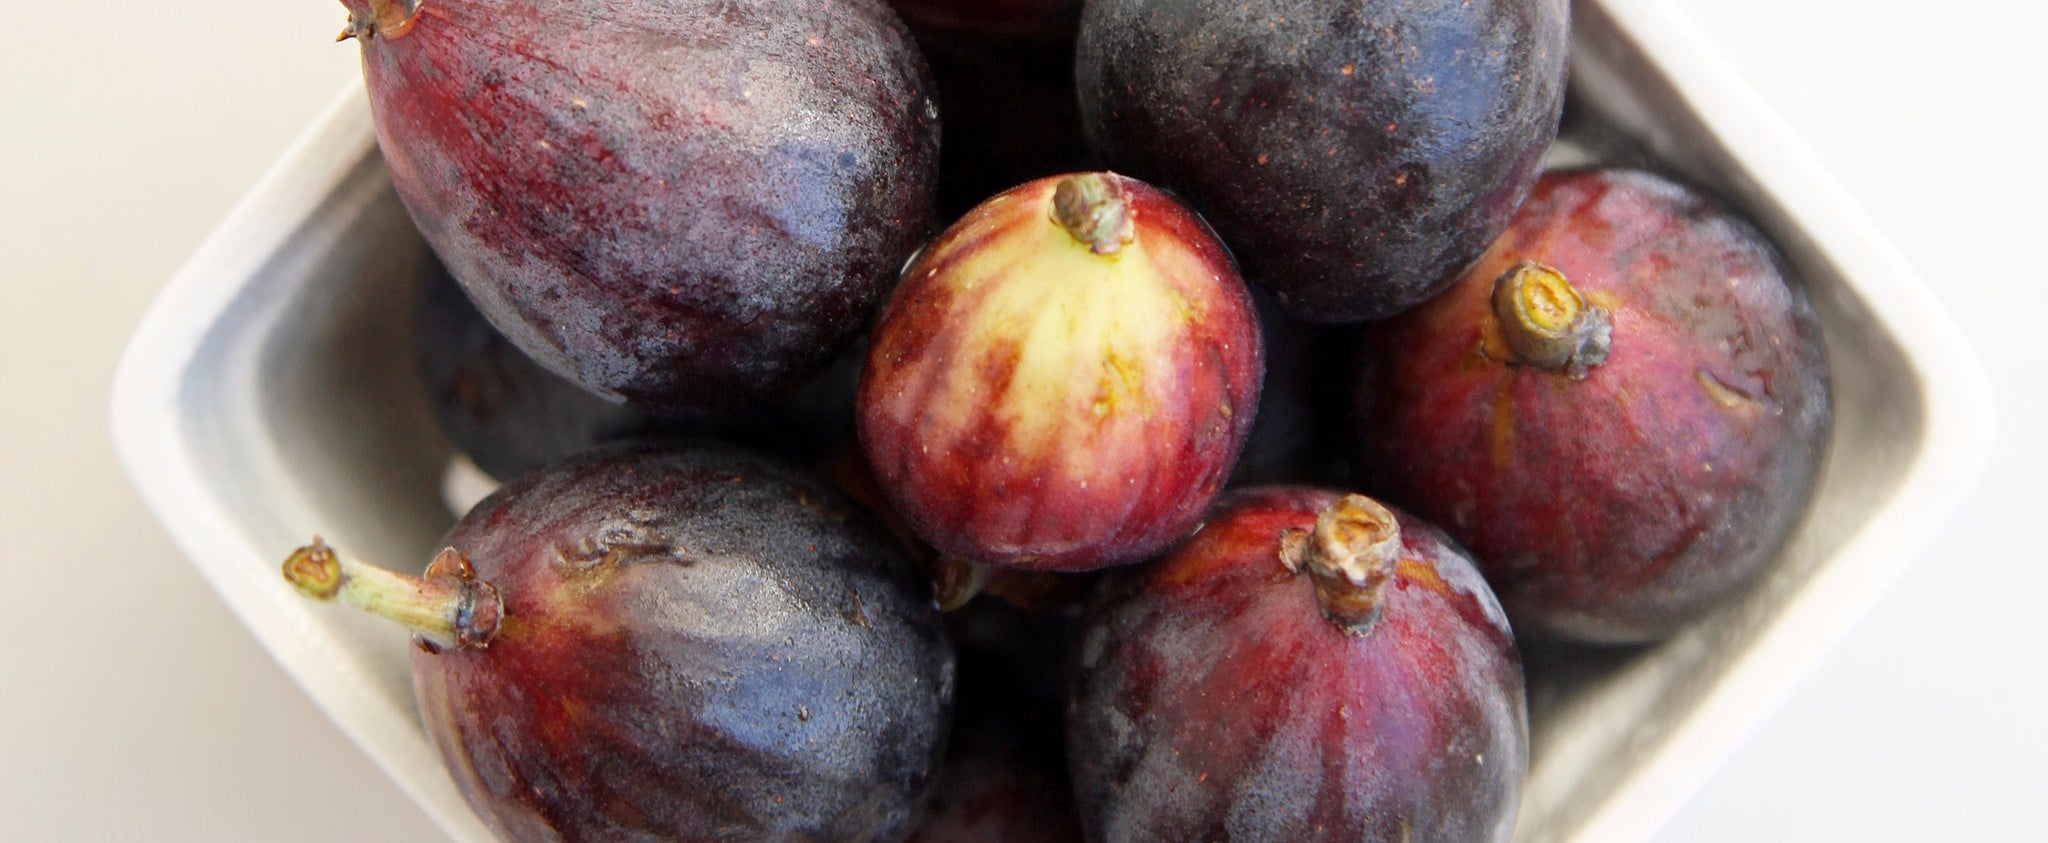 You'll Never Look at Figs the Same Way After Learning This Fact